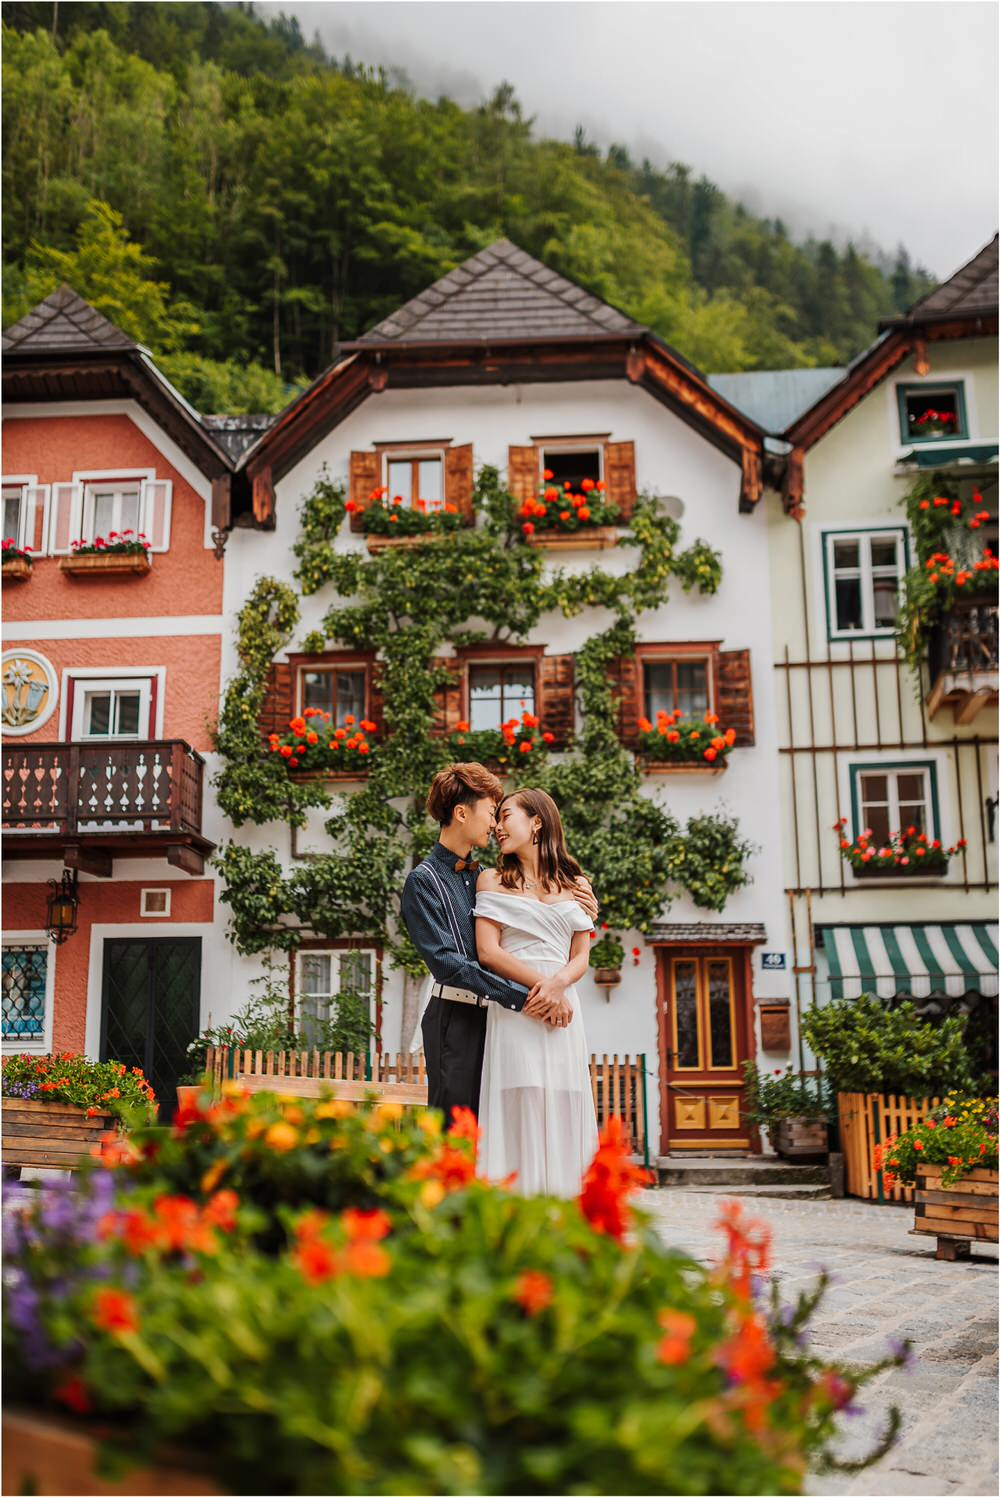 hallstatt austria wedding engagement photographer asian proposal surprise photography recommended nature professional 0013.jpg